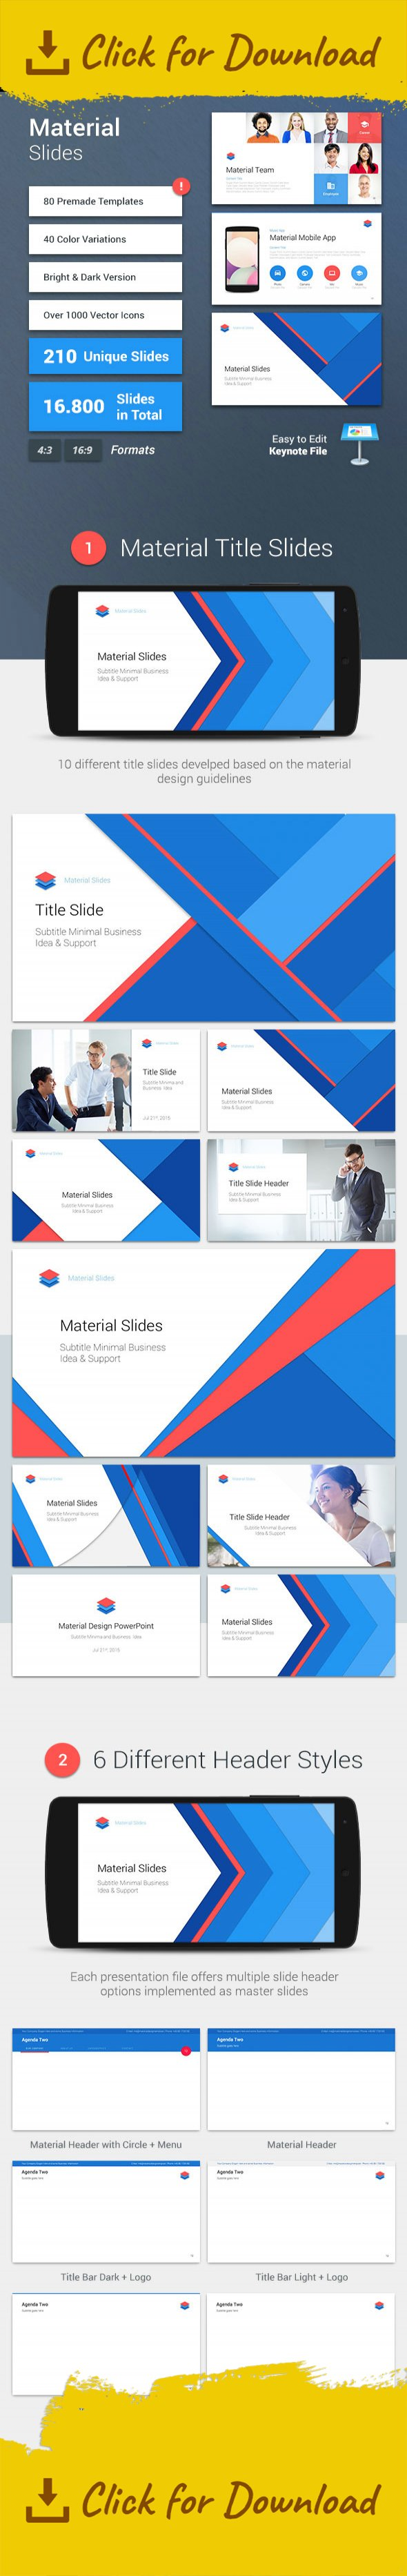 material keynote presentation template keynote design pinterest